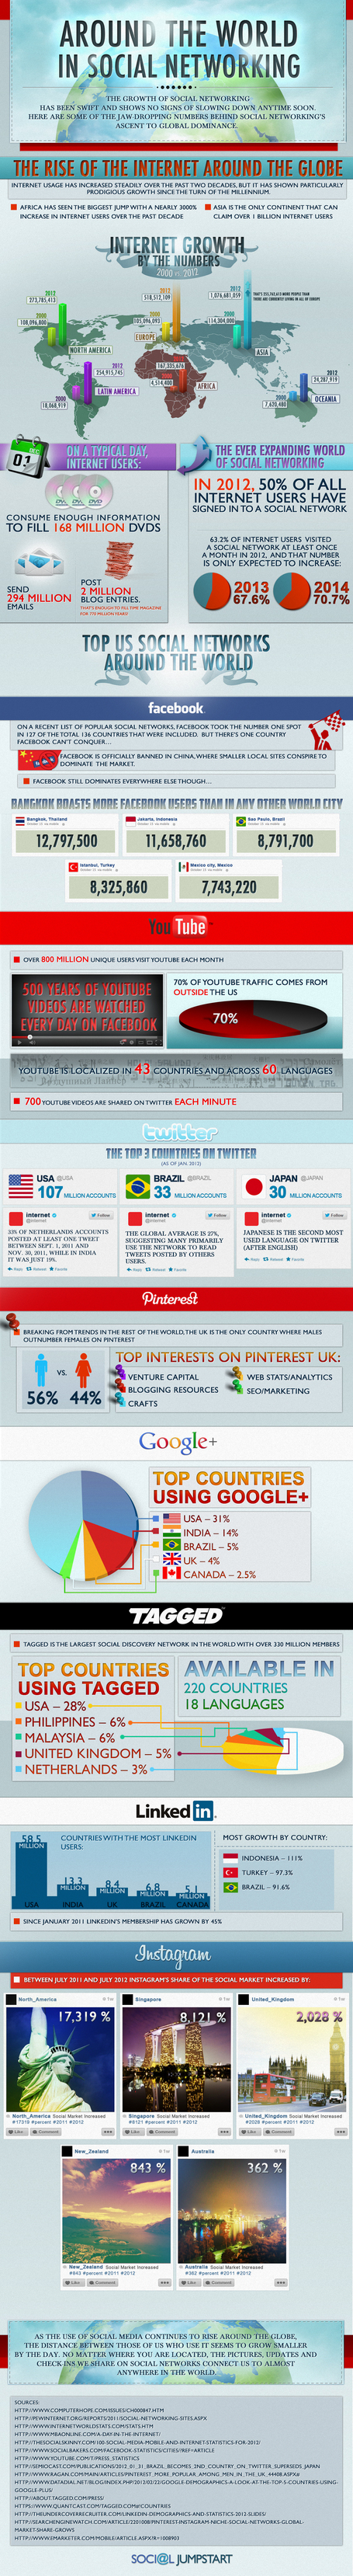 Facebook, Twitter, Pinterest, Instagram – How Big Is Social Media Around The World? | Aprendiendo a Distancia | Scoop.it